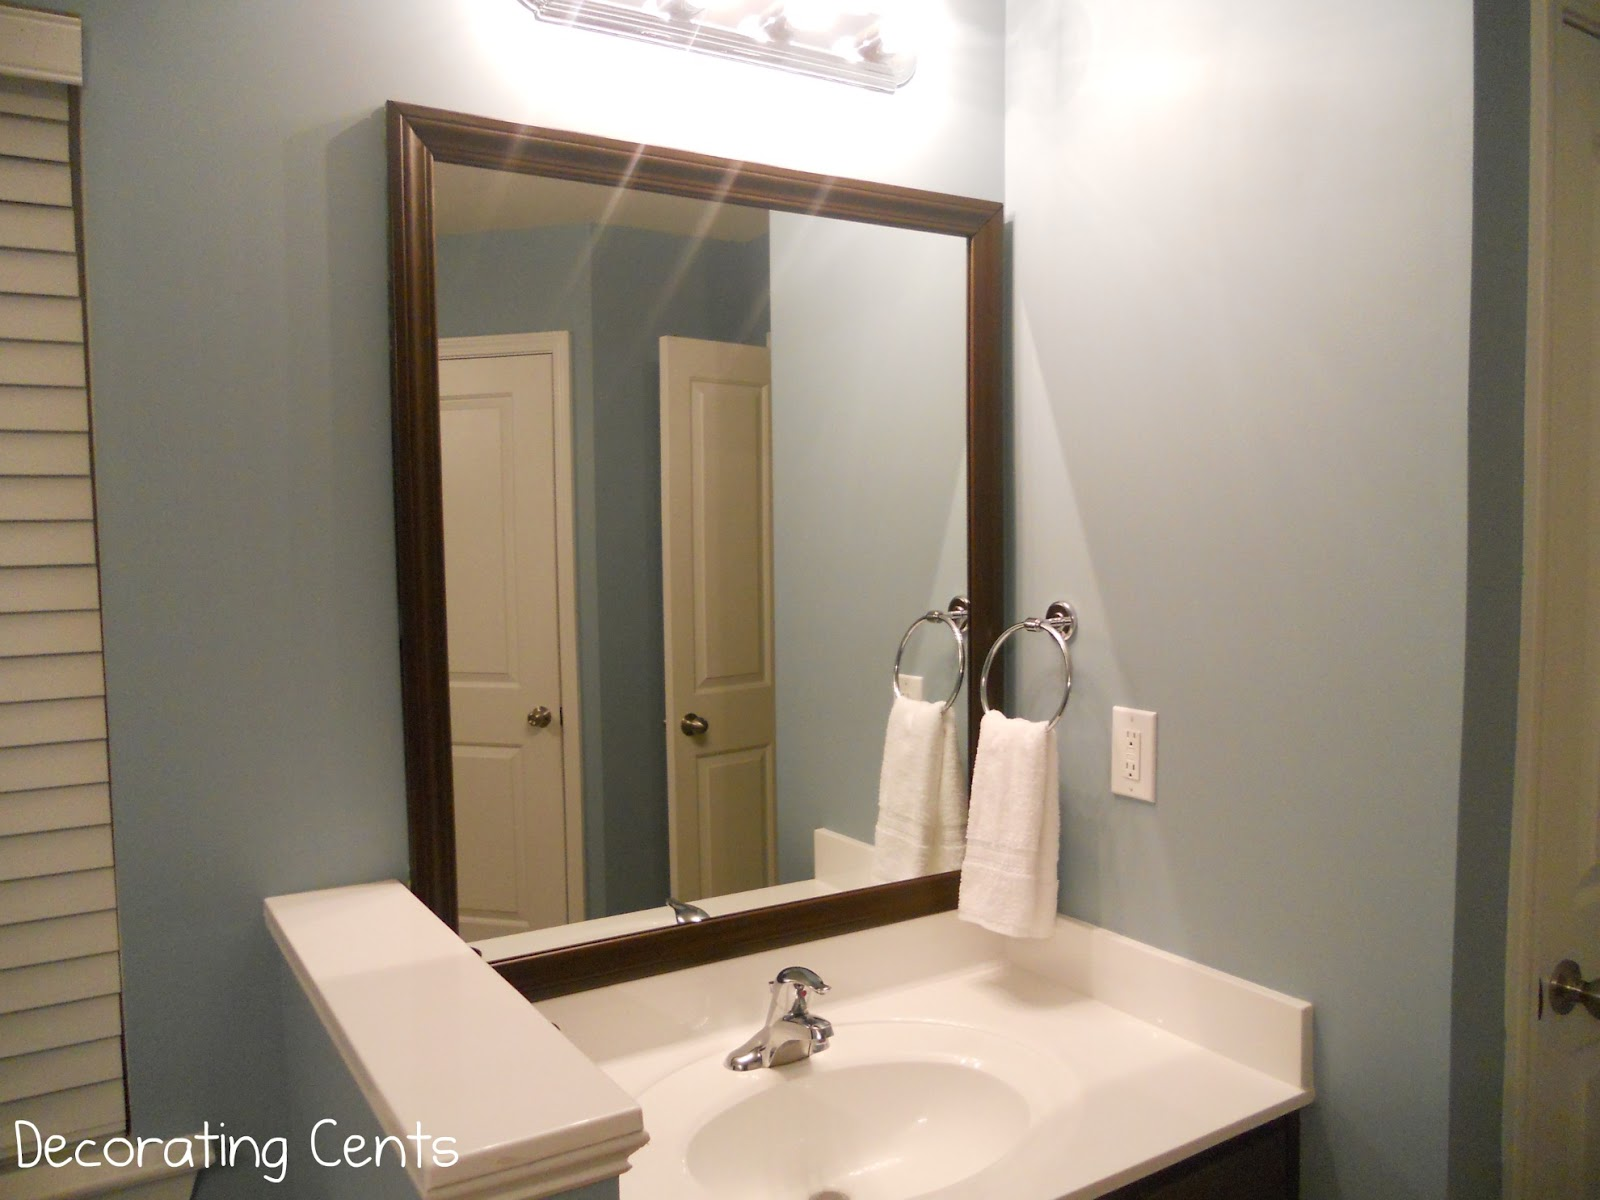 Mirror In The Bathroom Stunning Decorating Cents Framing The Bathroom Mirrors Review